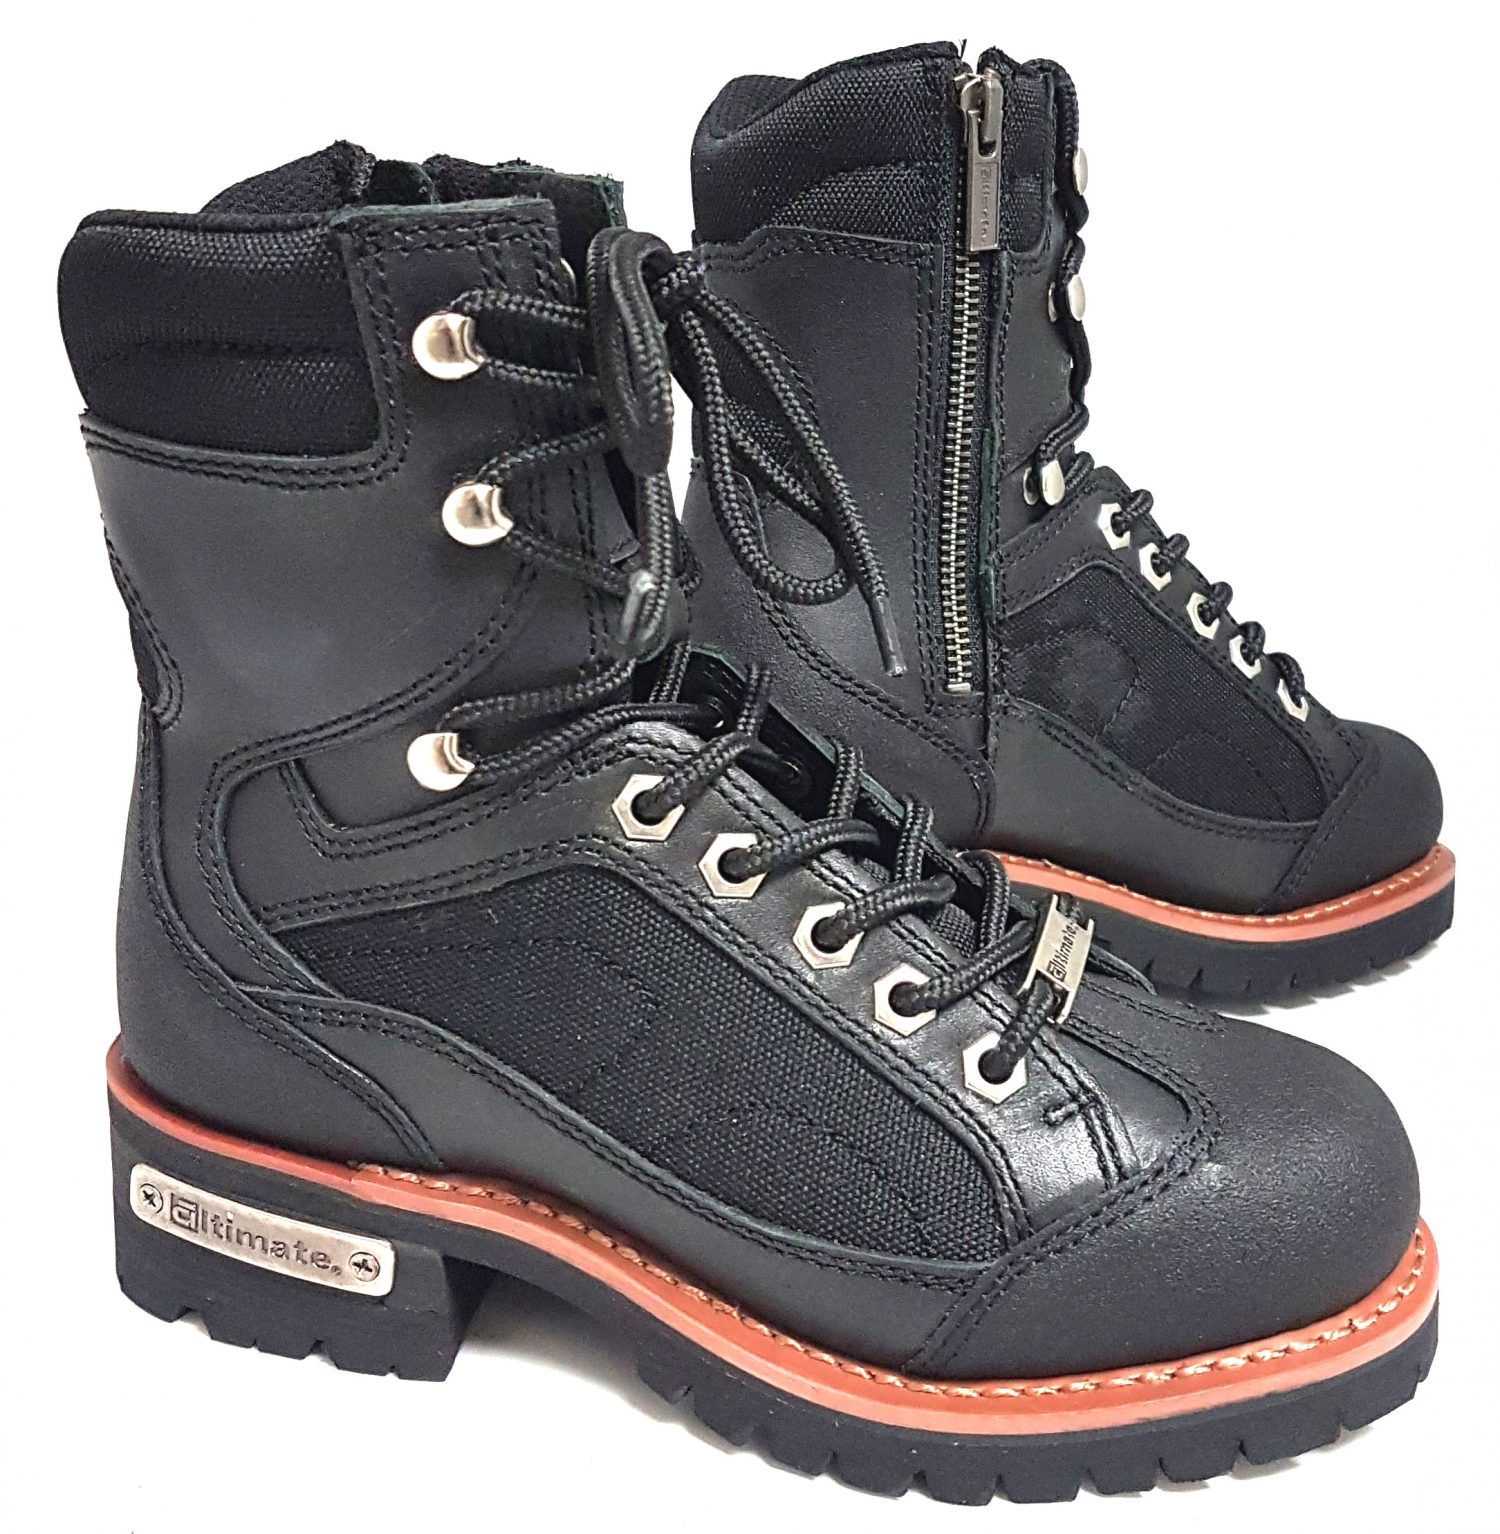 Womens Motorcycle Boot Designed For Protection And Comfort